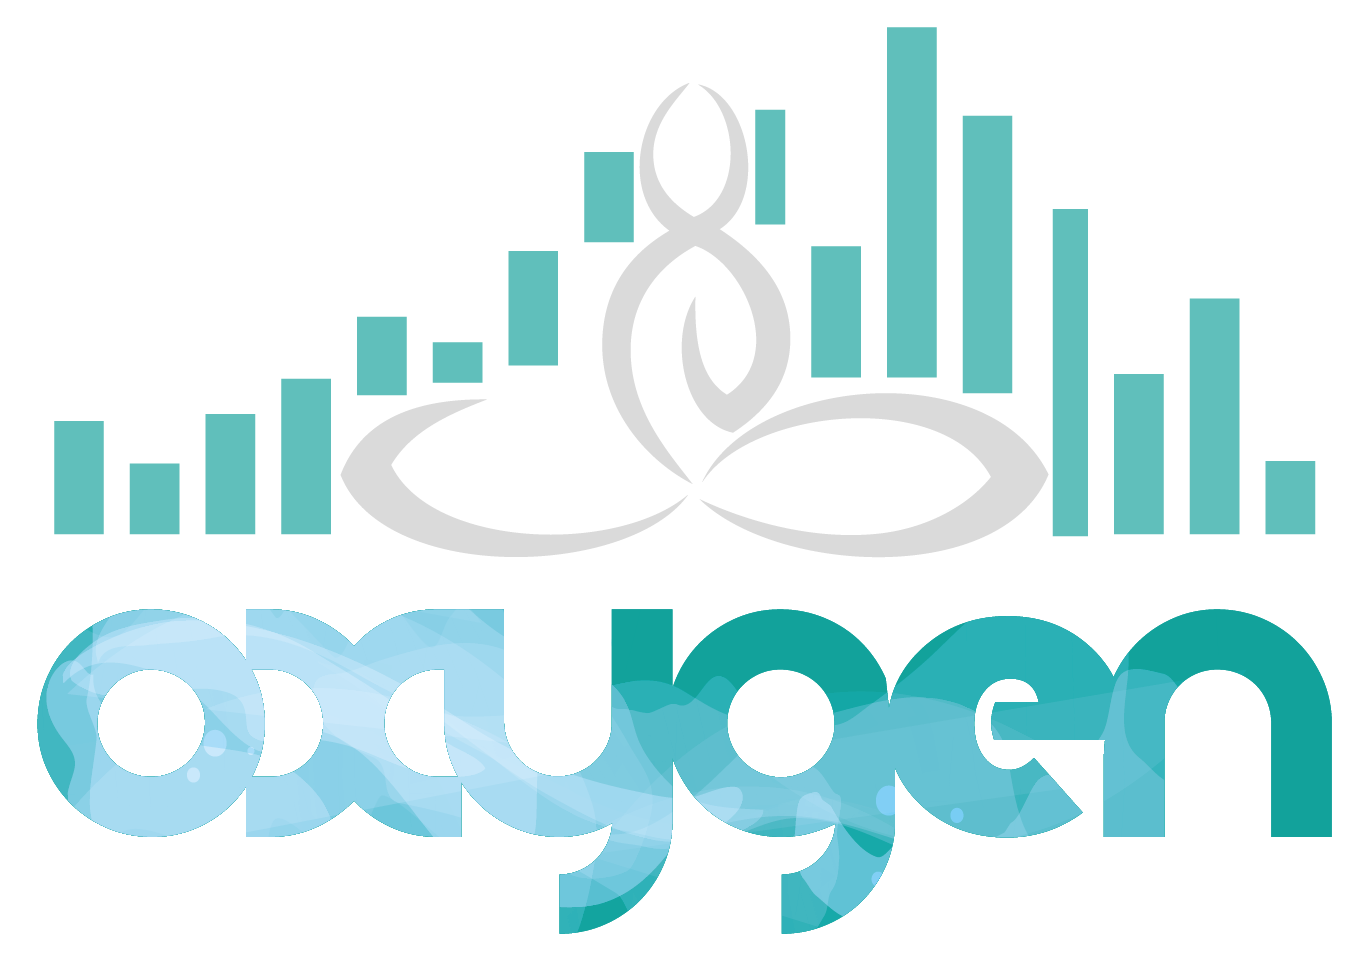 Oxygen Music Band